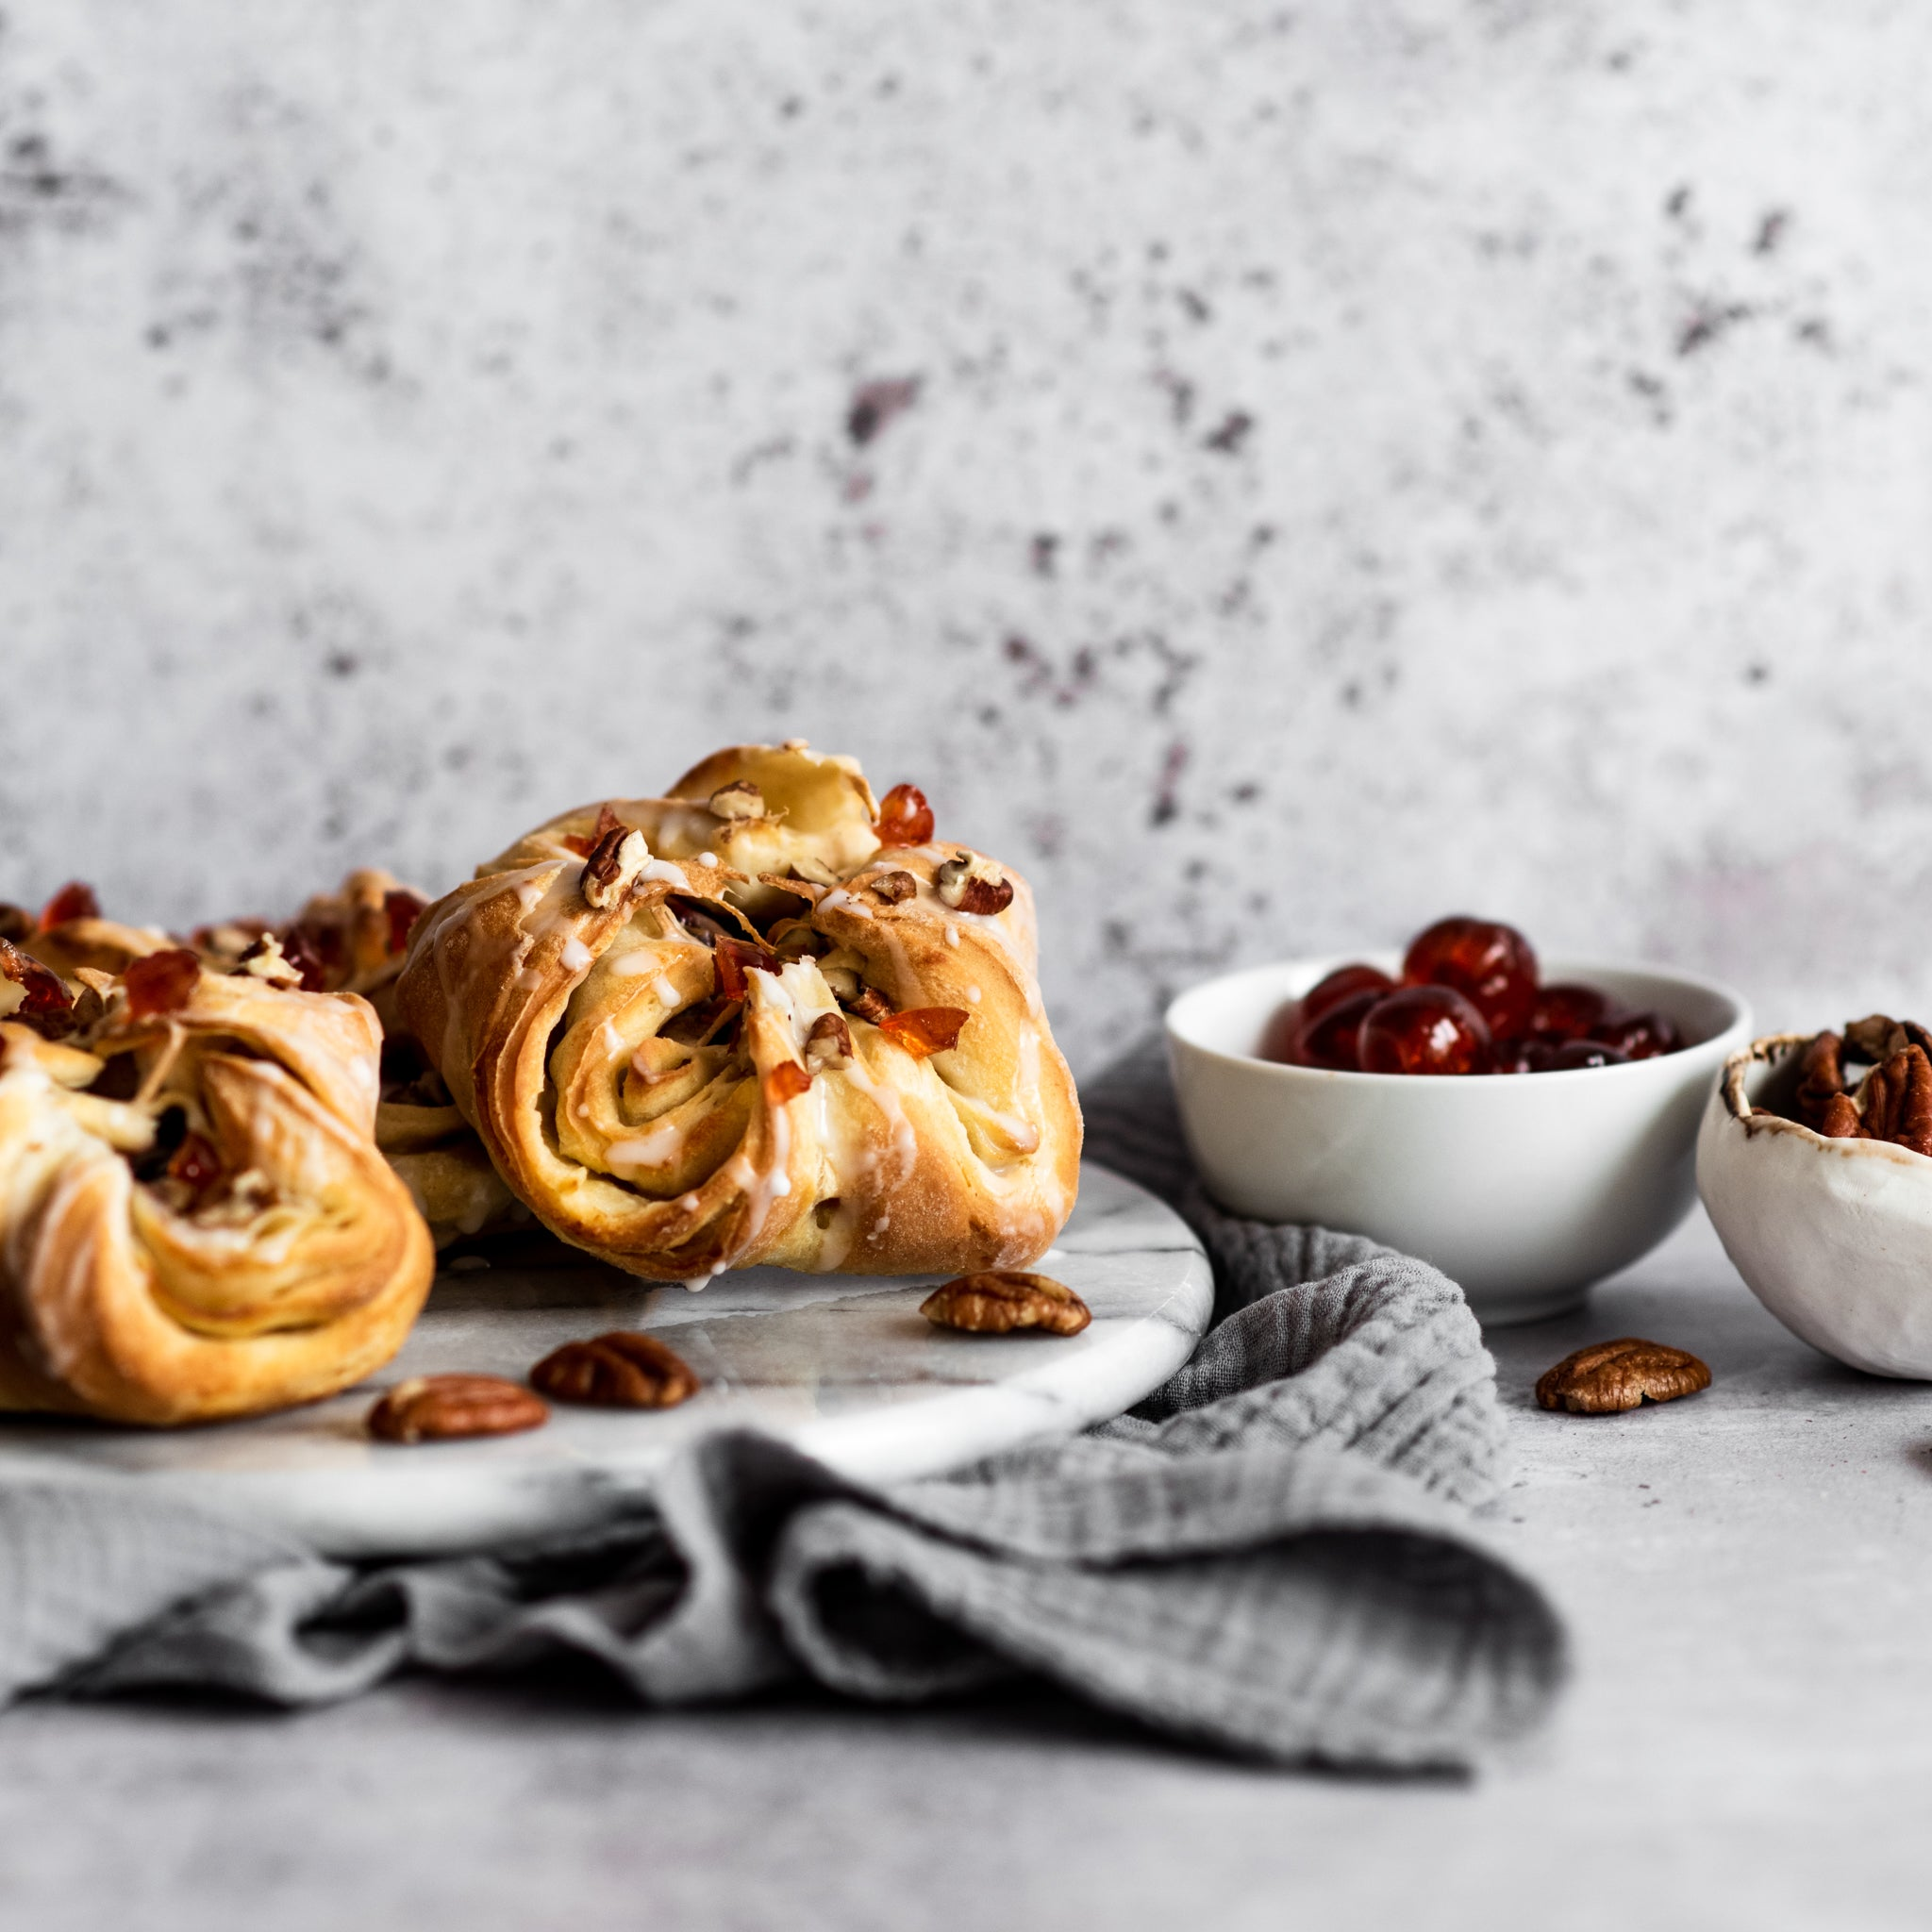 Close up of two danish pastries and bowl of pecans and cherries